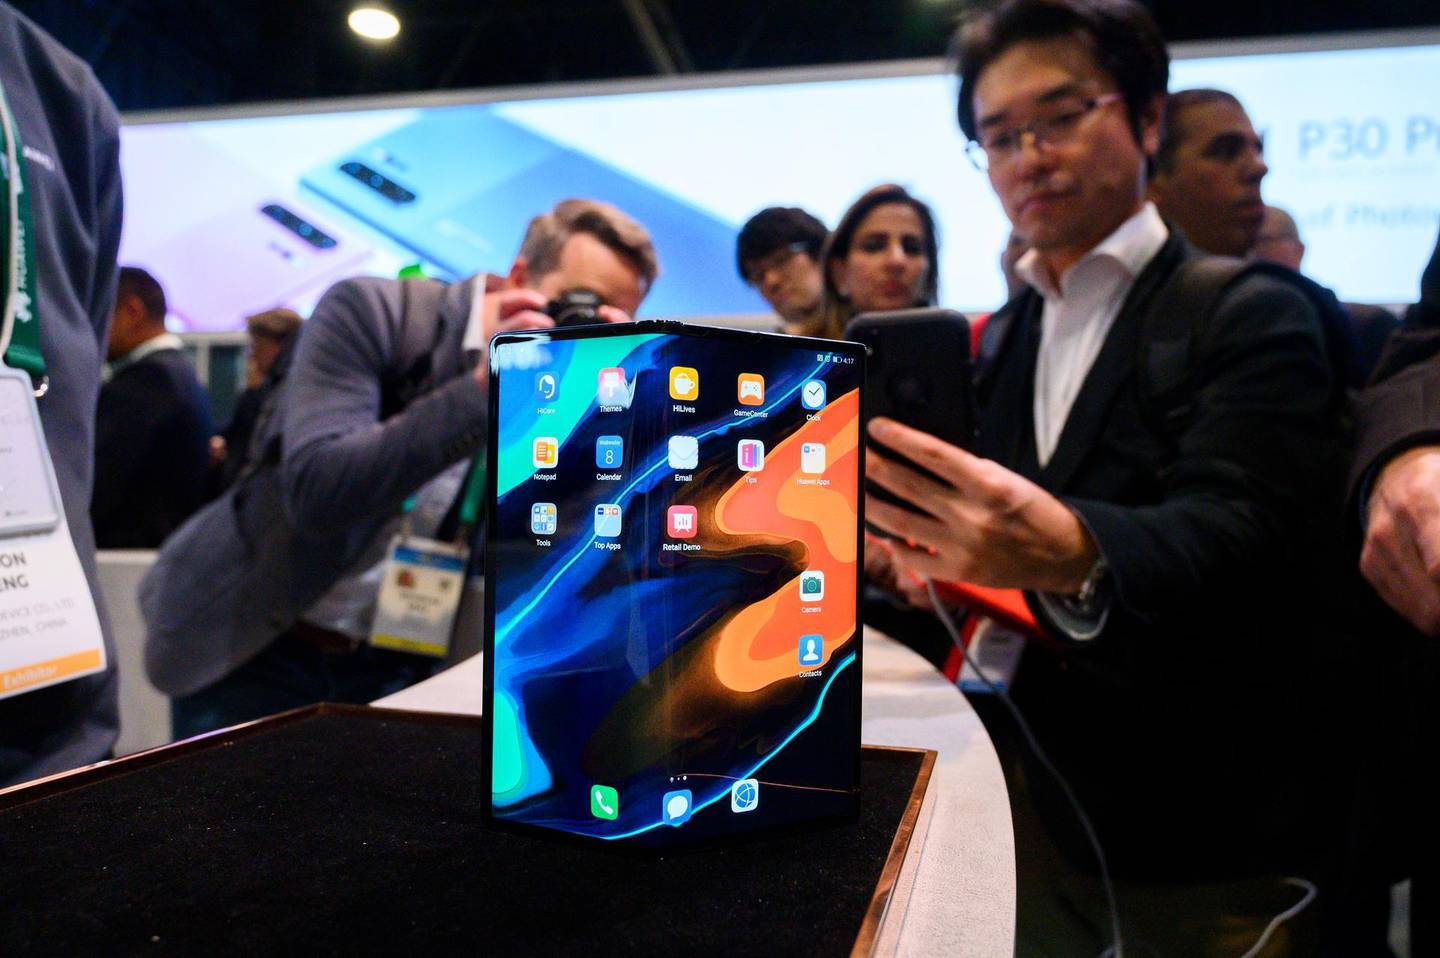 The Huawei Mate X foldable smartphone is displayed January 8, 2020 at the 2020 Consumer Electronics Show (CES) in Las Vegas, Nevada. (Photo by Robyn Beck / AFP)